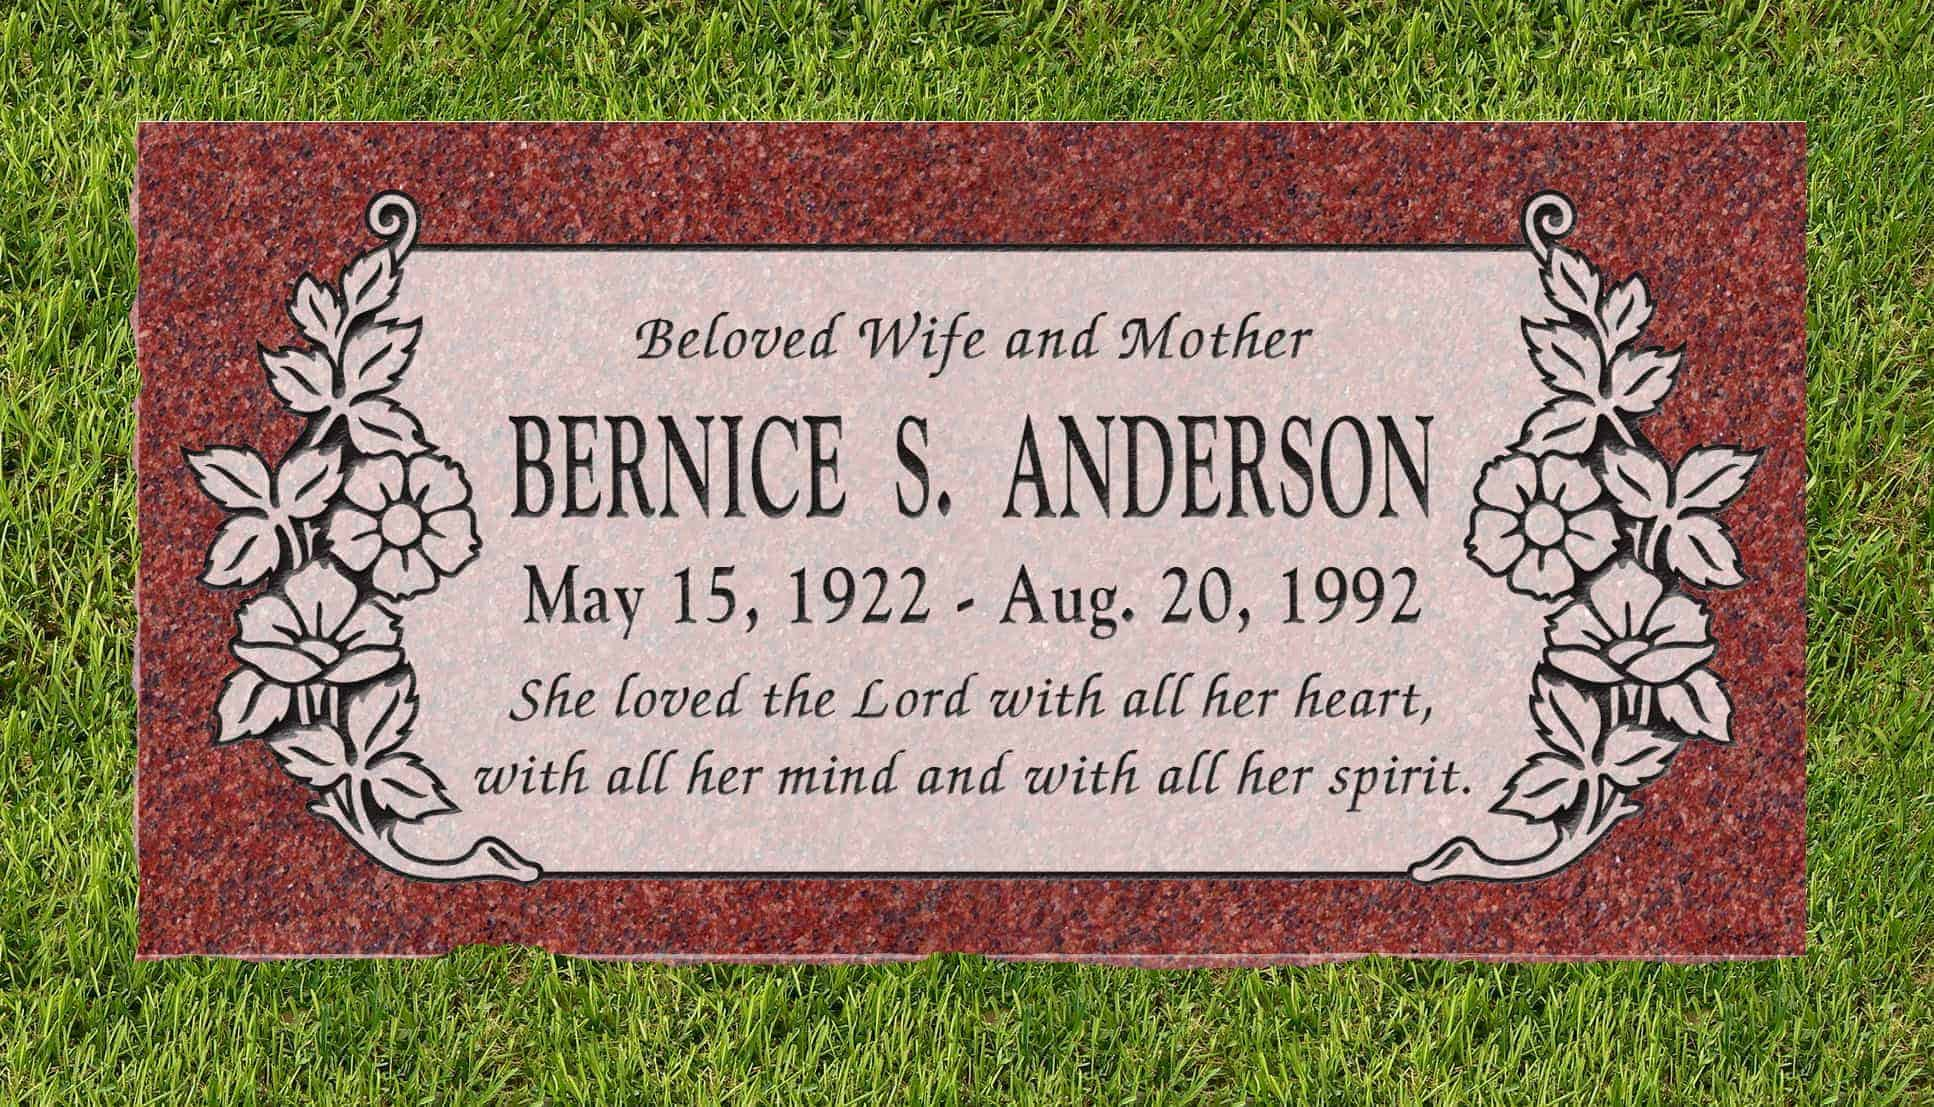 24inch_x_12inch_x_3inch_Flat_Granite_Headstone_in_Imperial_Red_with_design_C-101_installed_in_ground